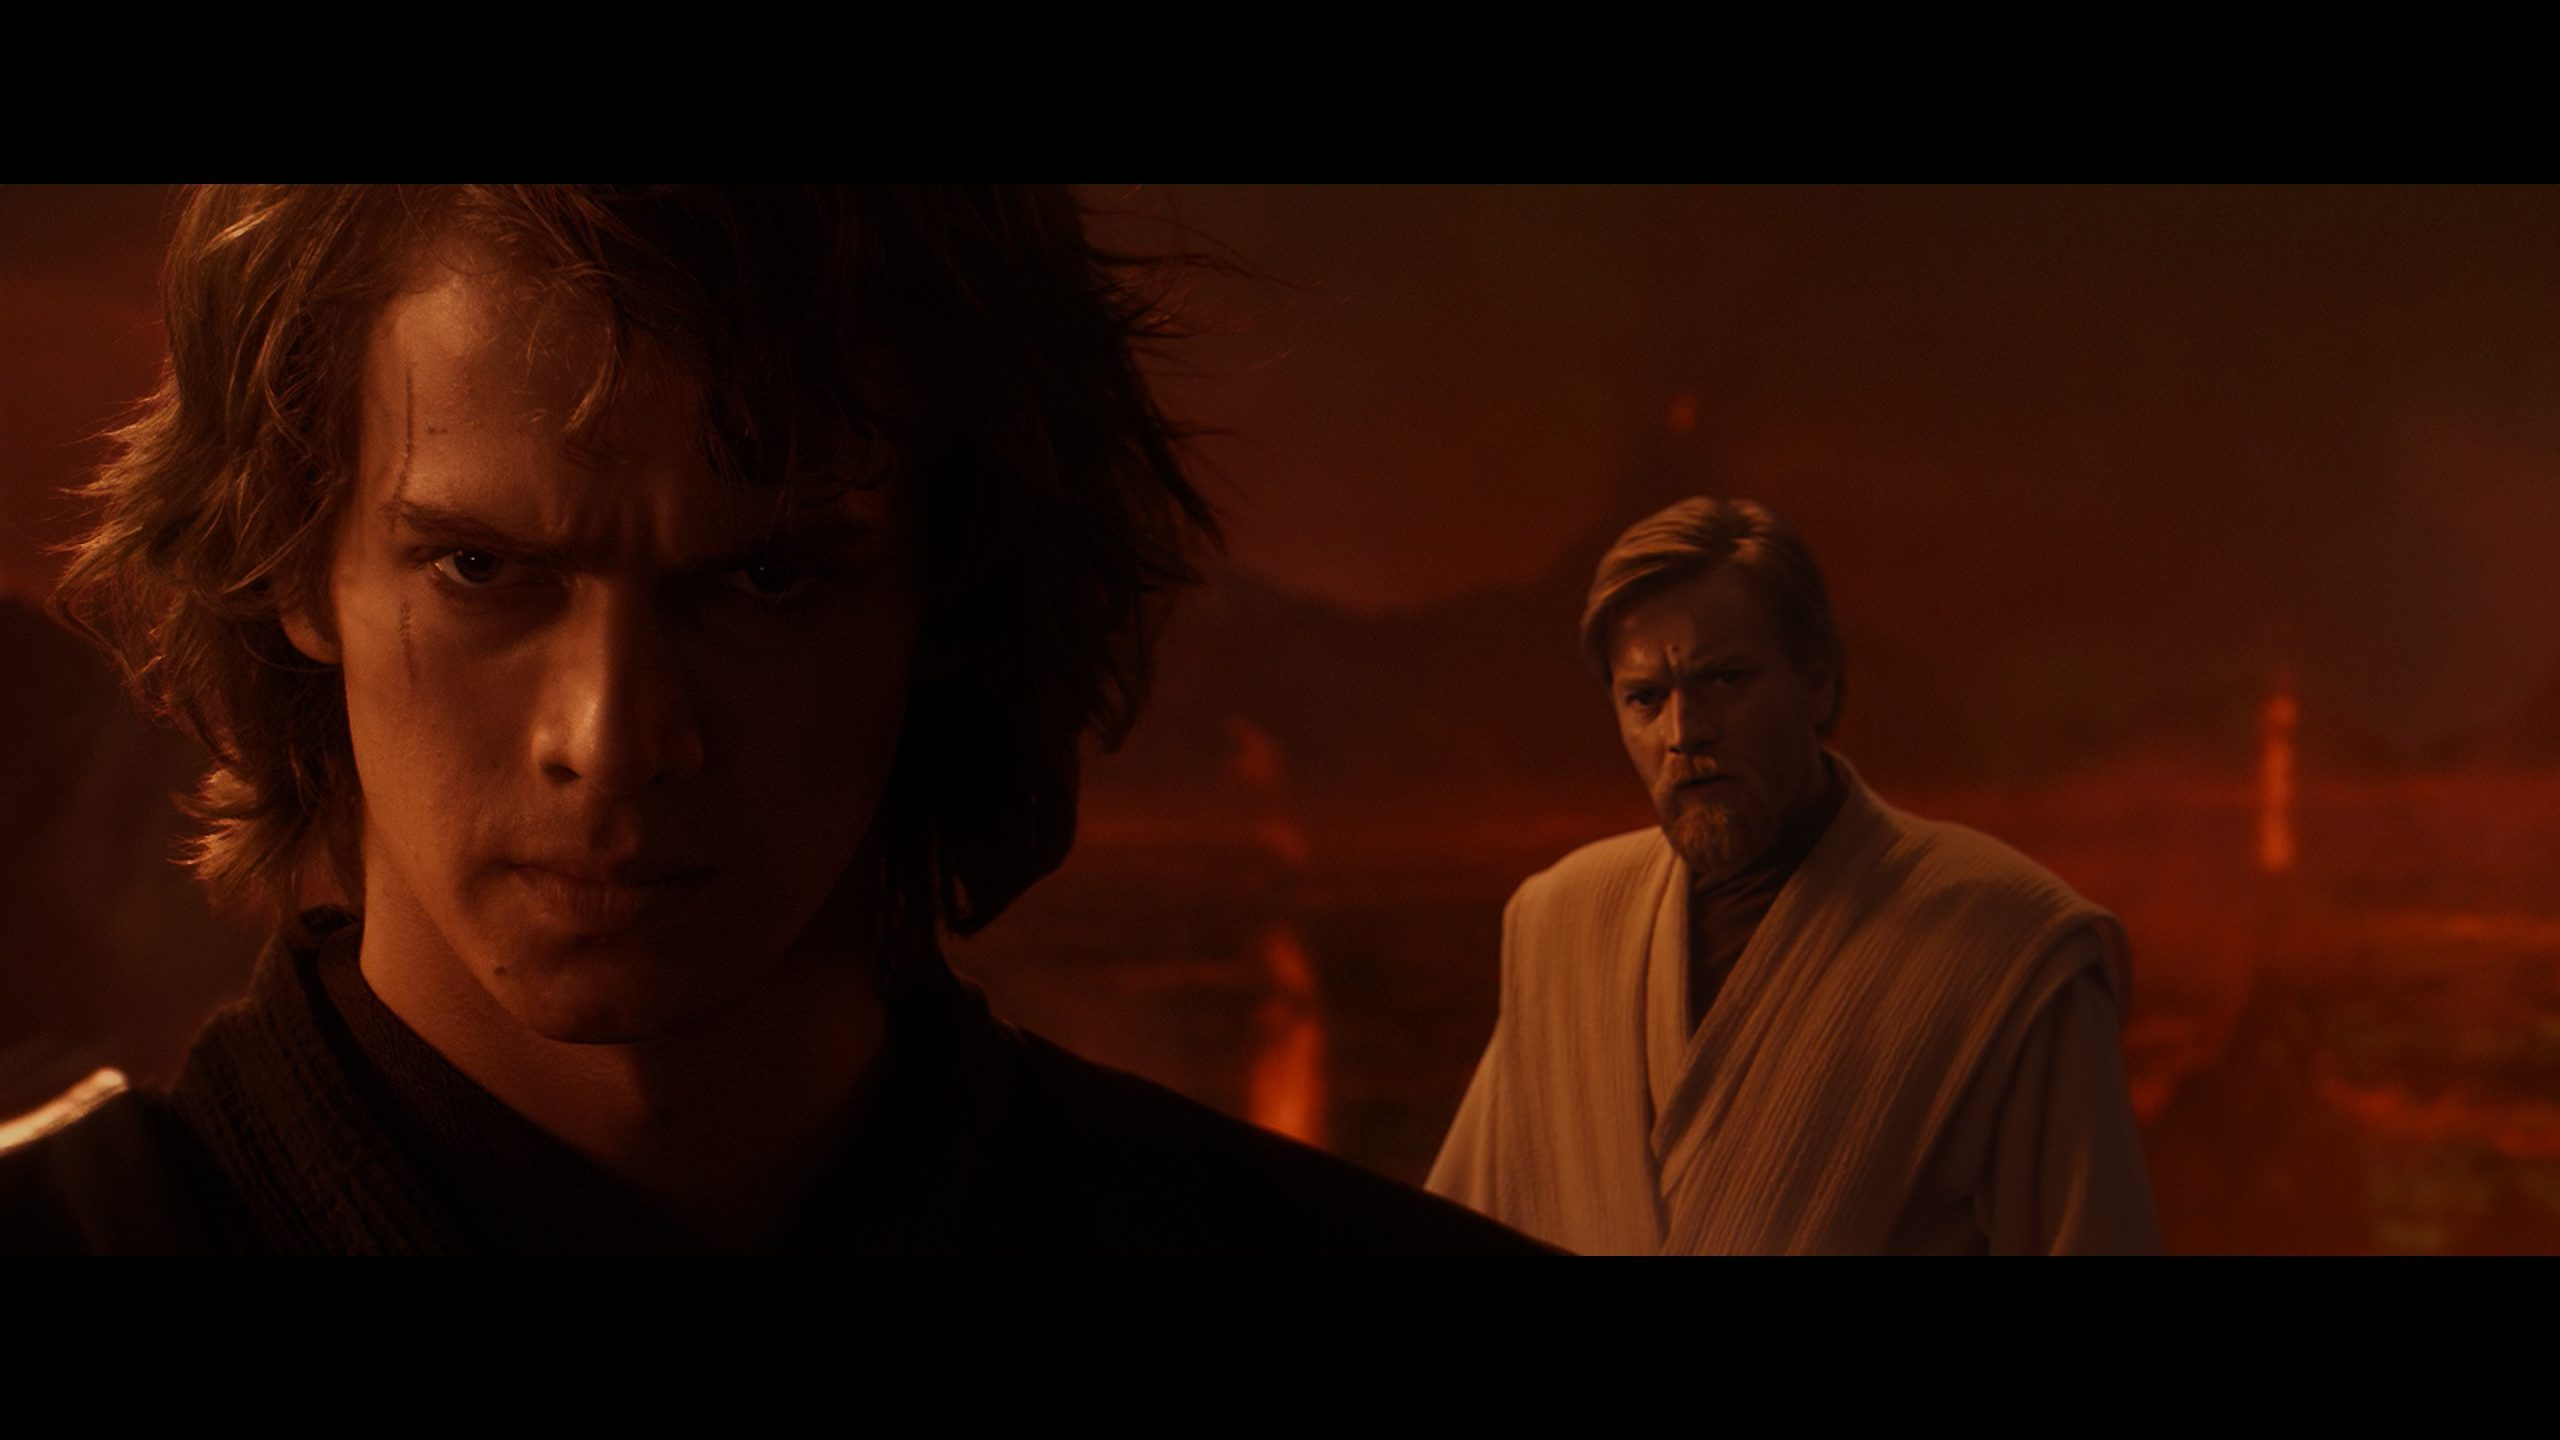 Star Wars Revenge of the Sith.mkv snapshot 01.47.25 2020.04.01 20.46.33 scaled